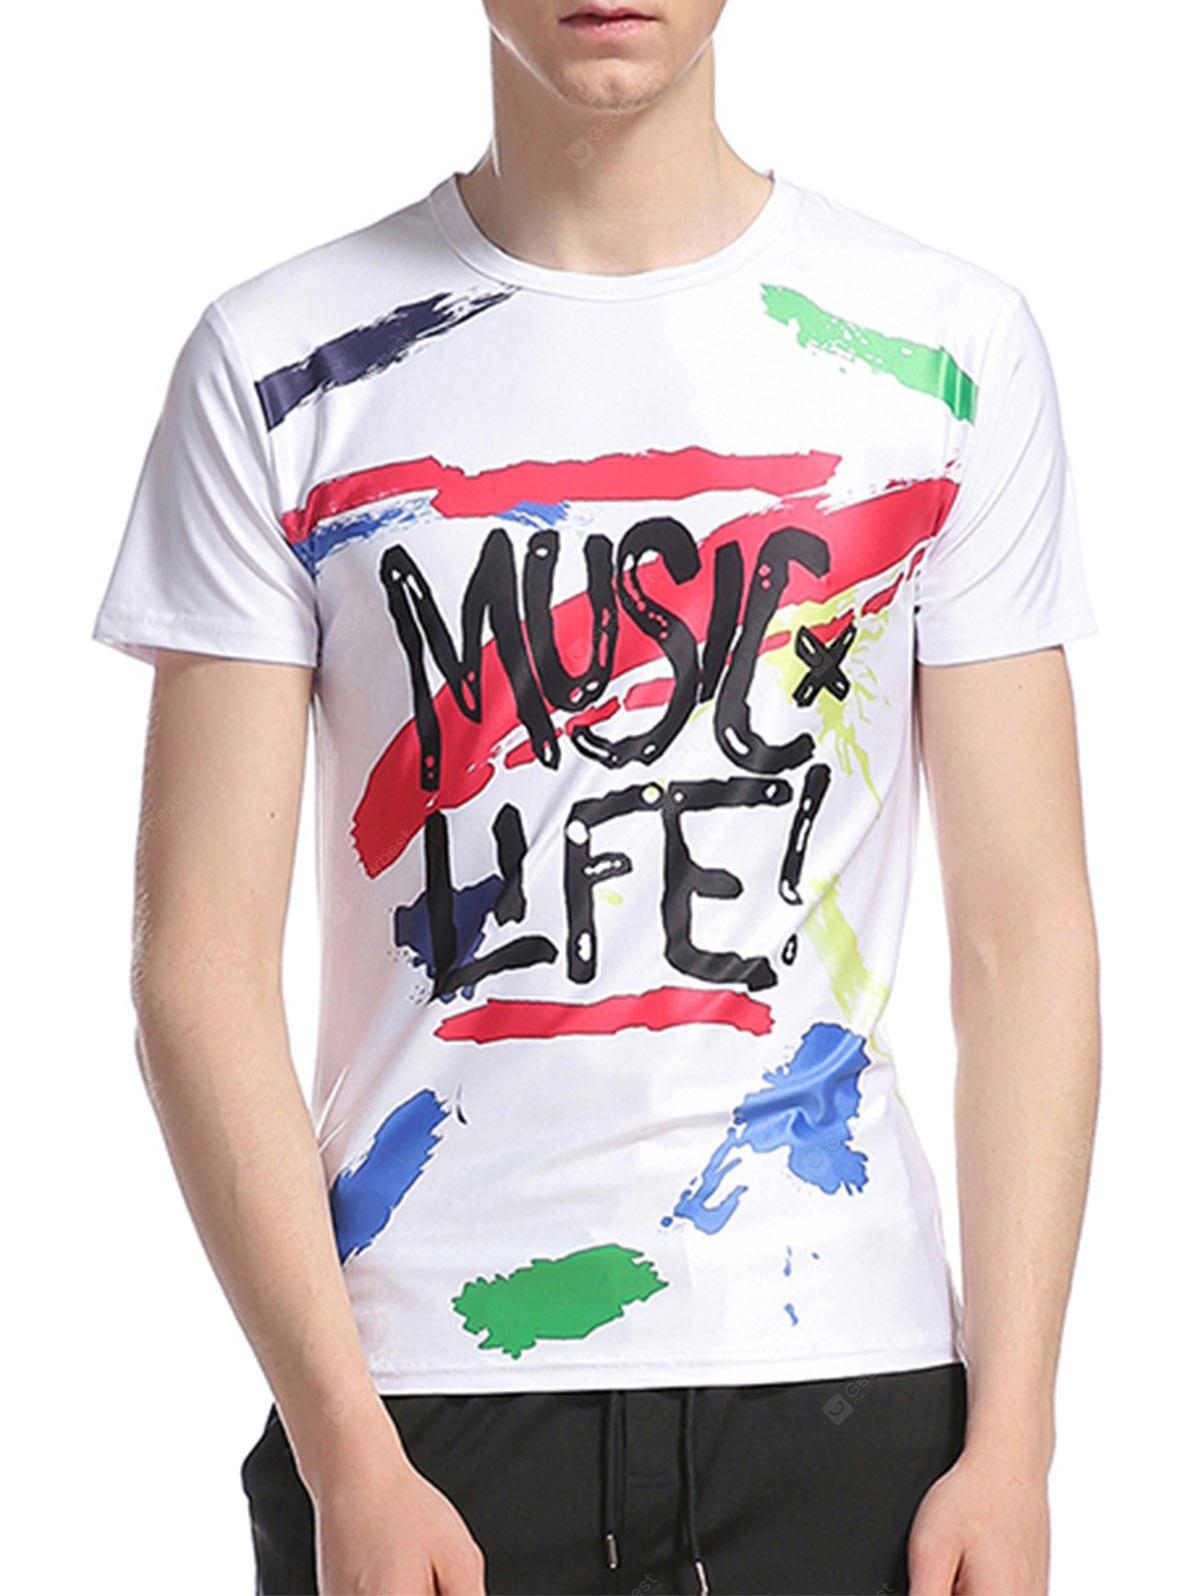 Crew Neck Graphic Splatter Paint Print T-Shirt